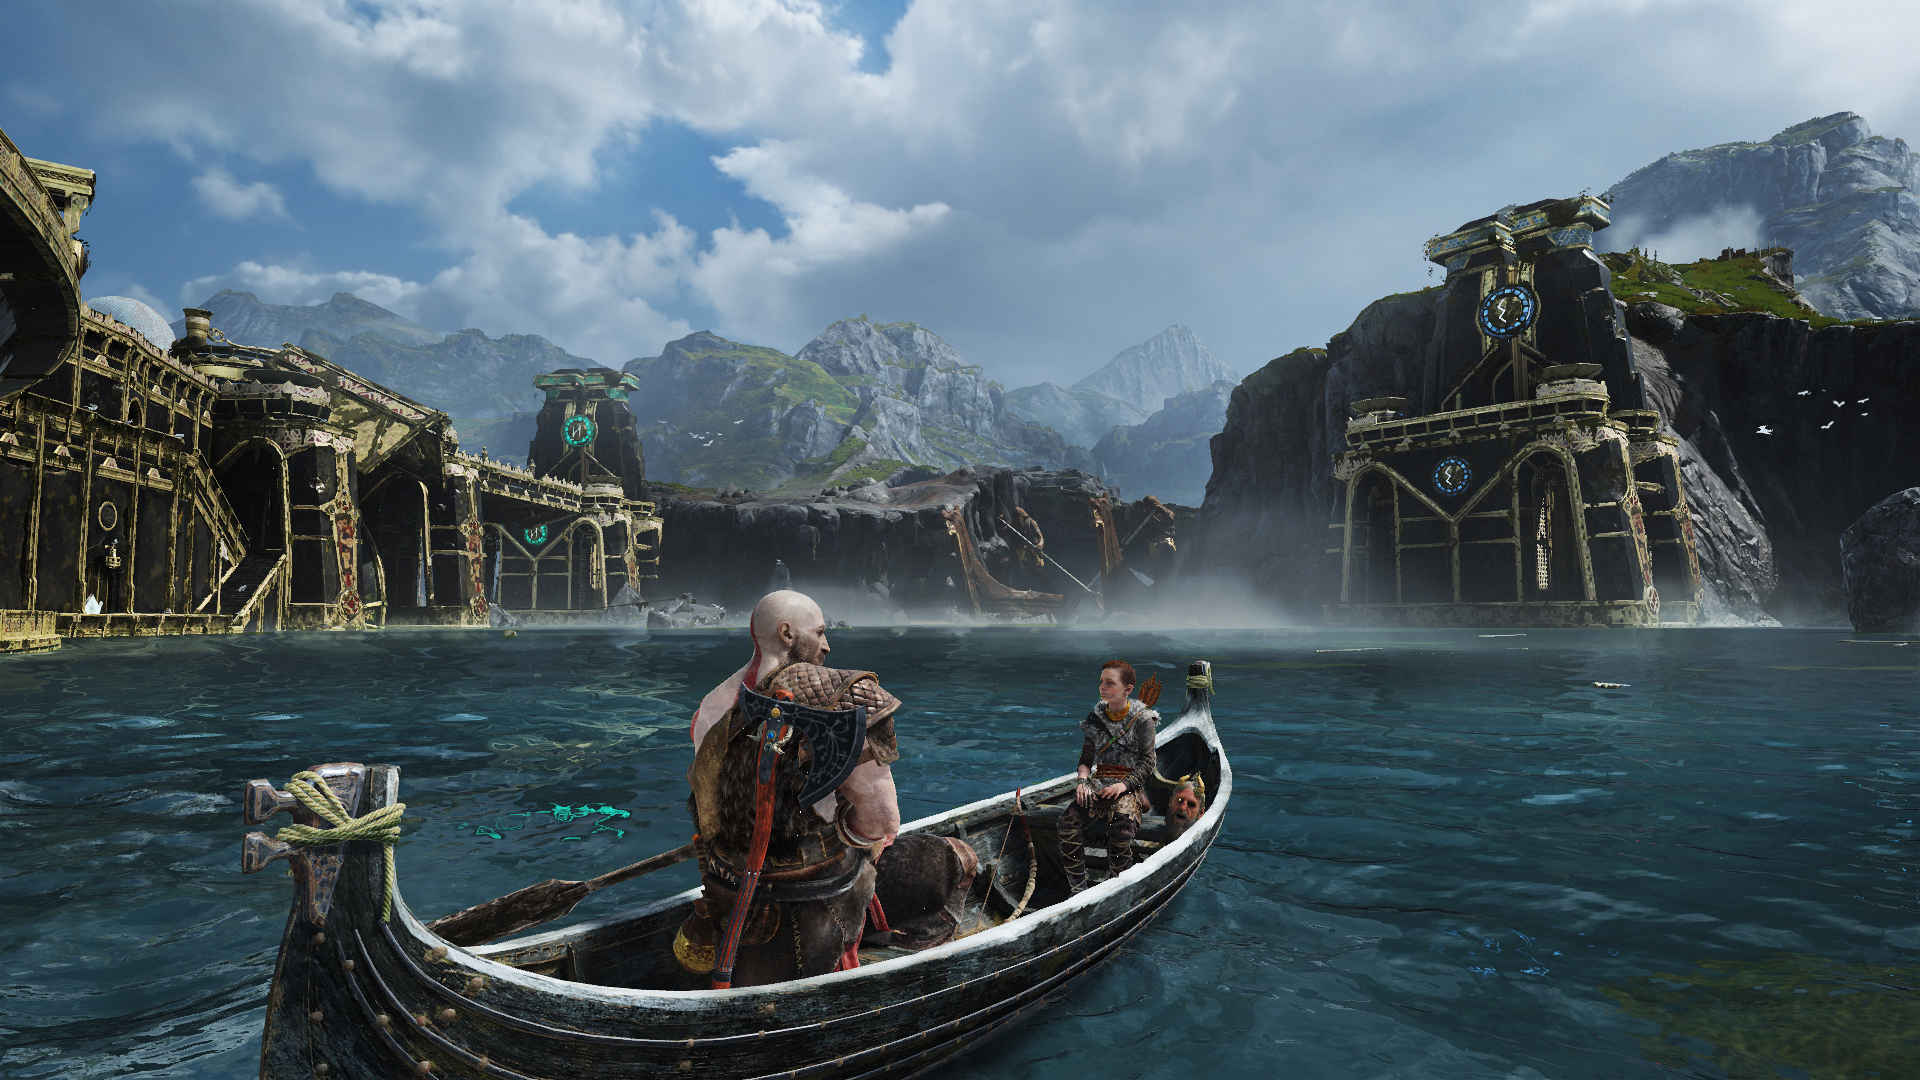 A scene from the new God of War game